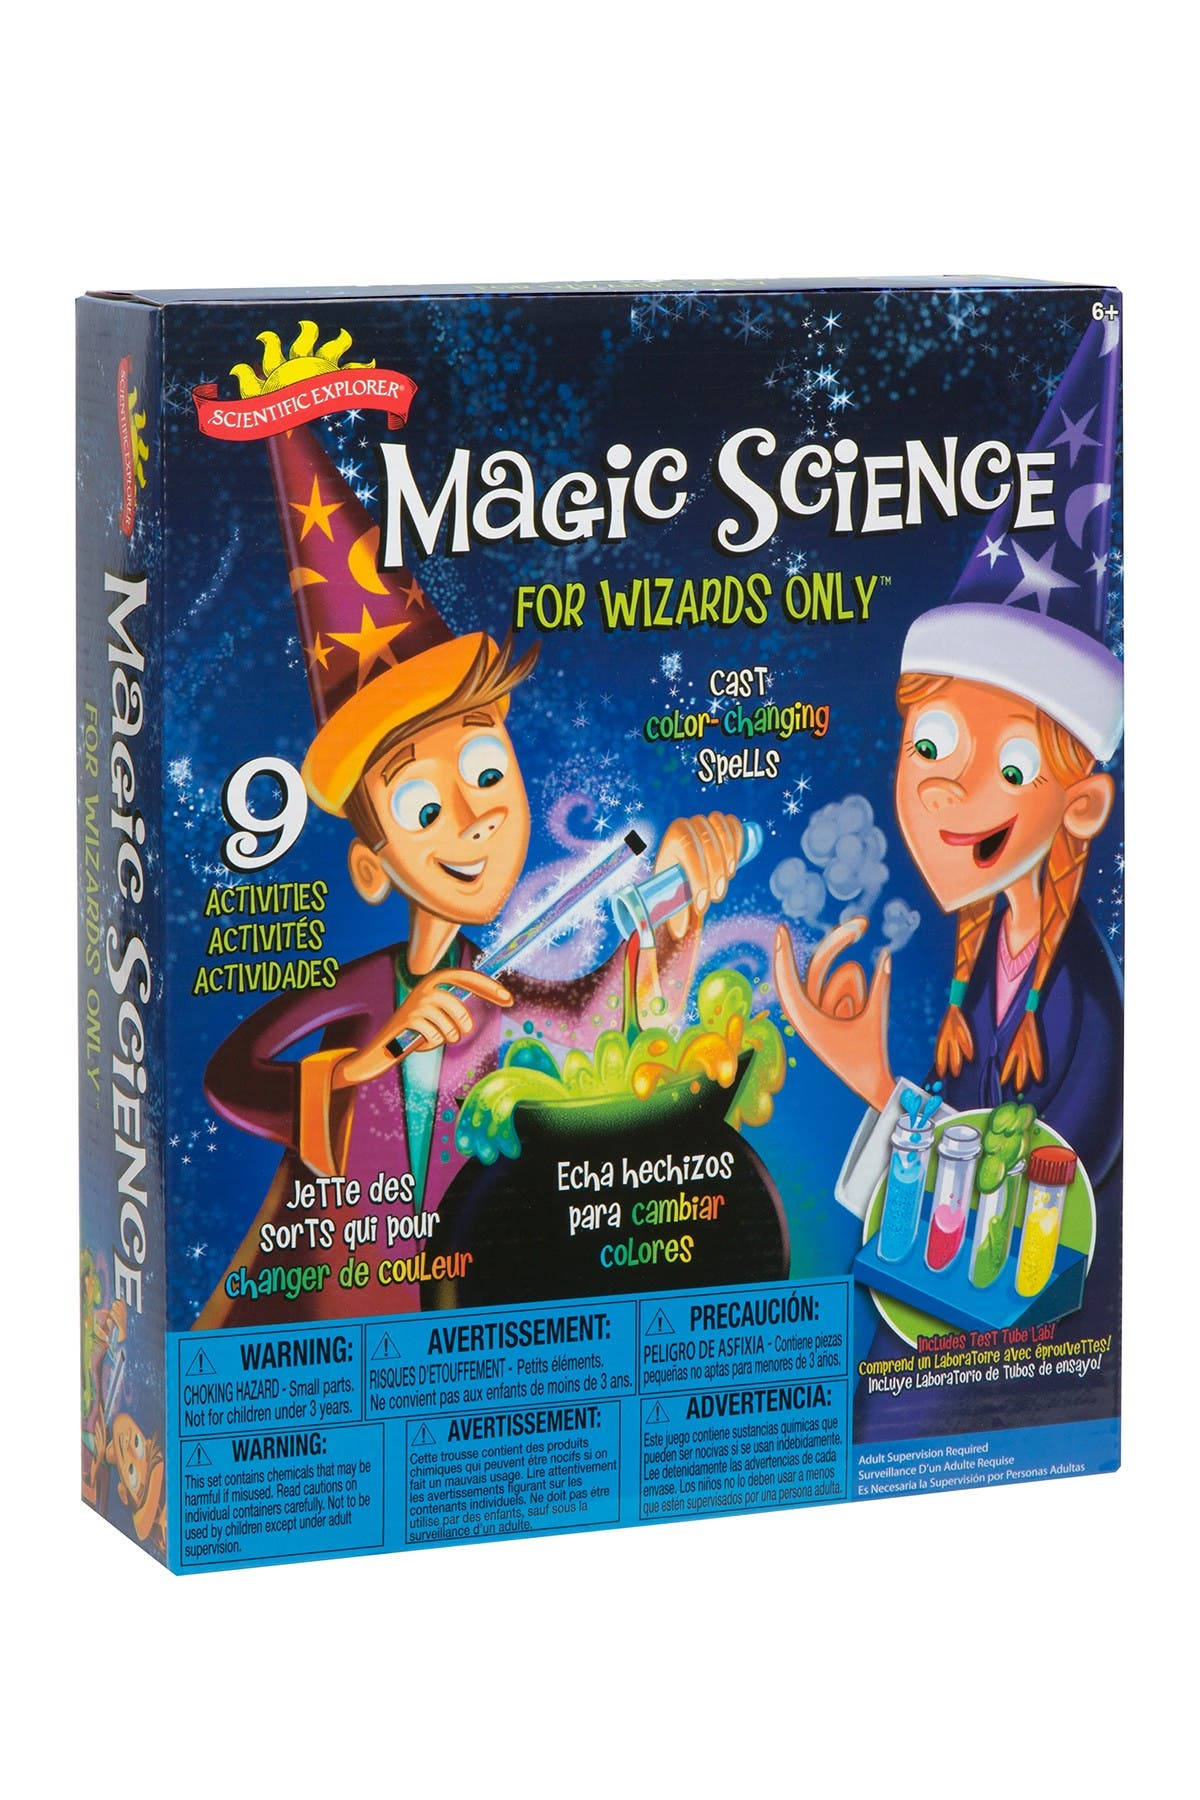 Image of Poof-Slinky Magic Science Kit for Wizards Only